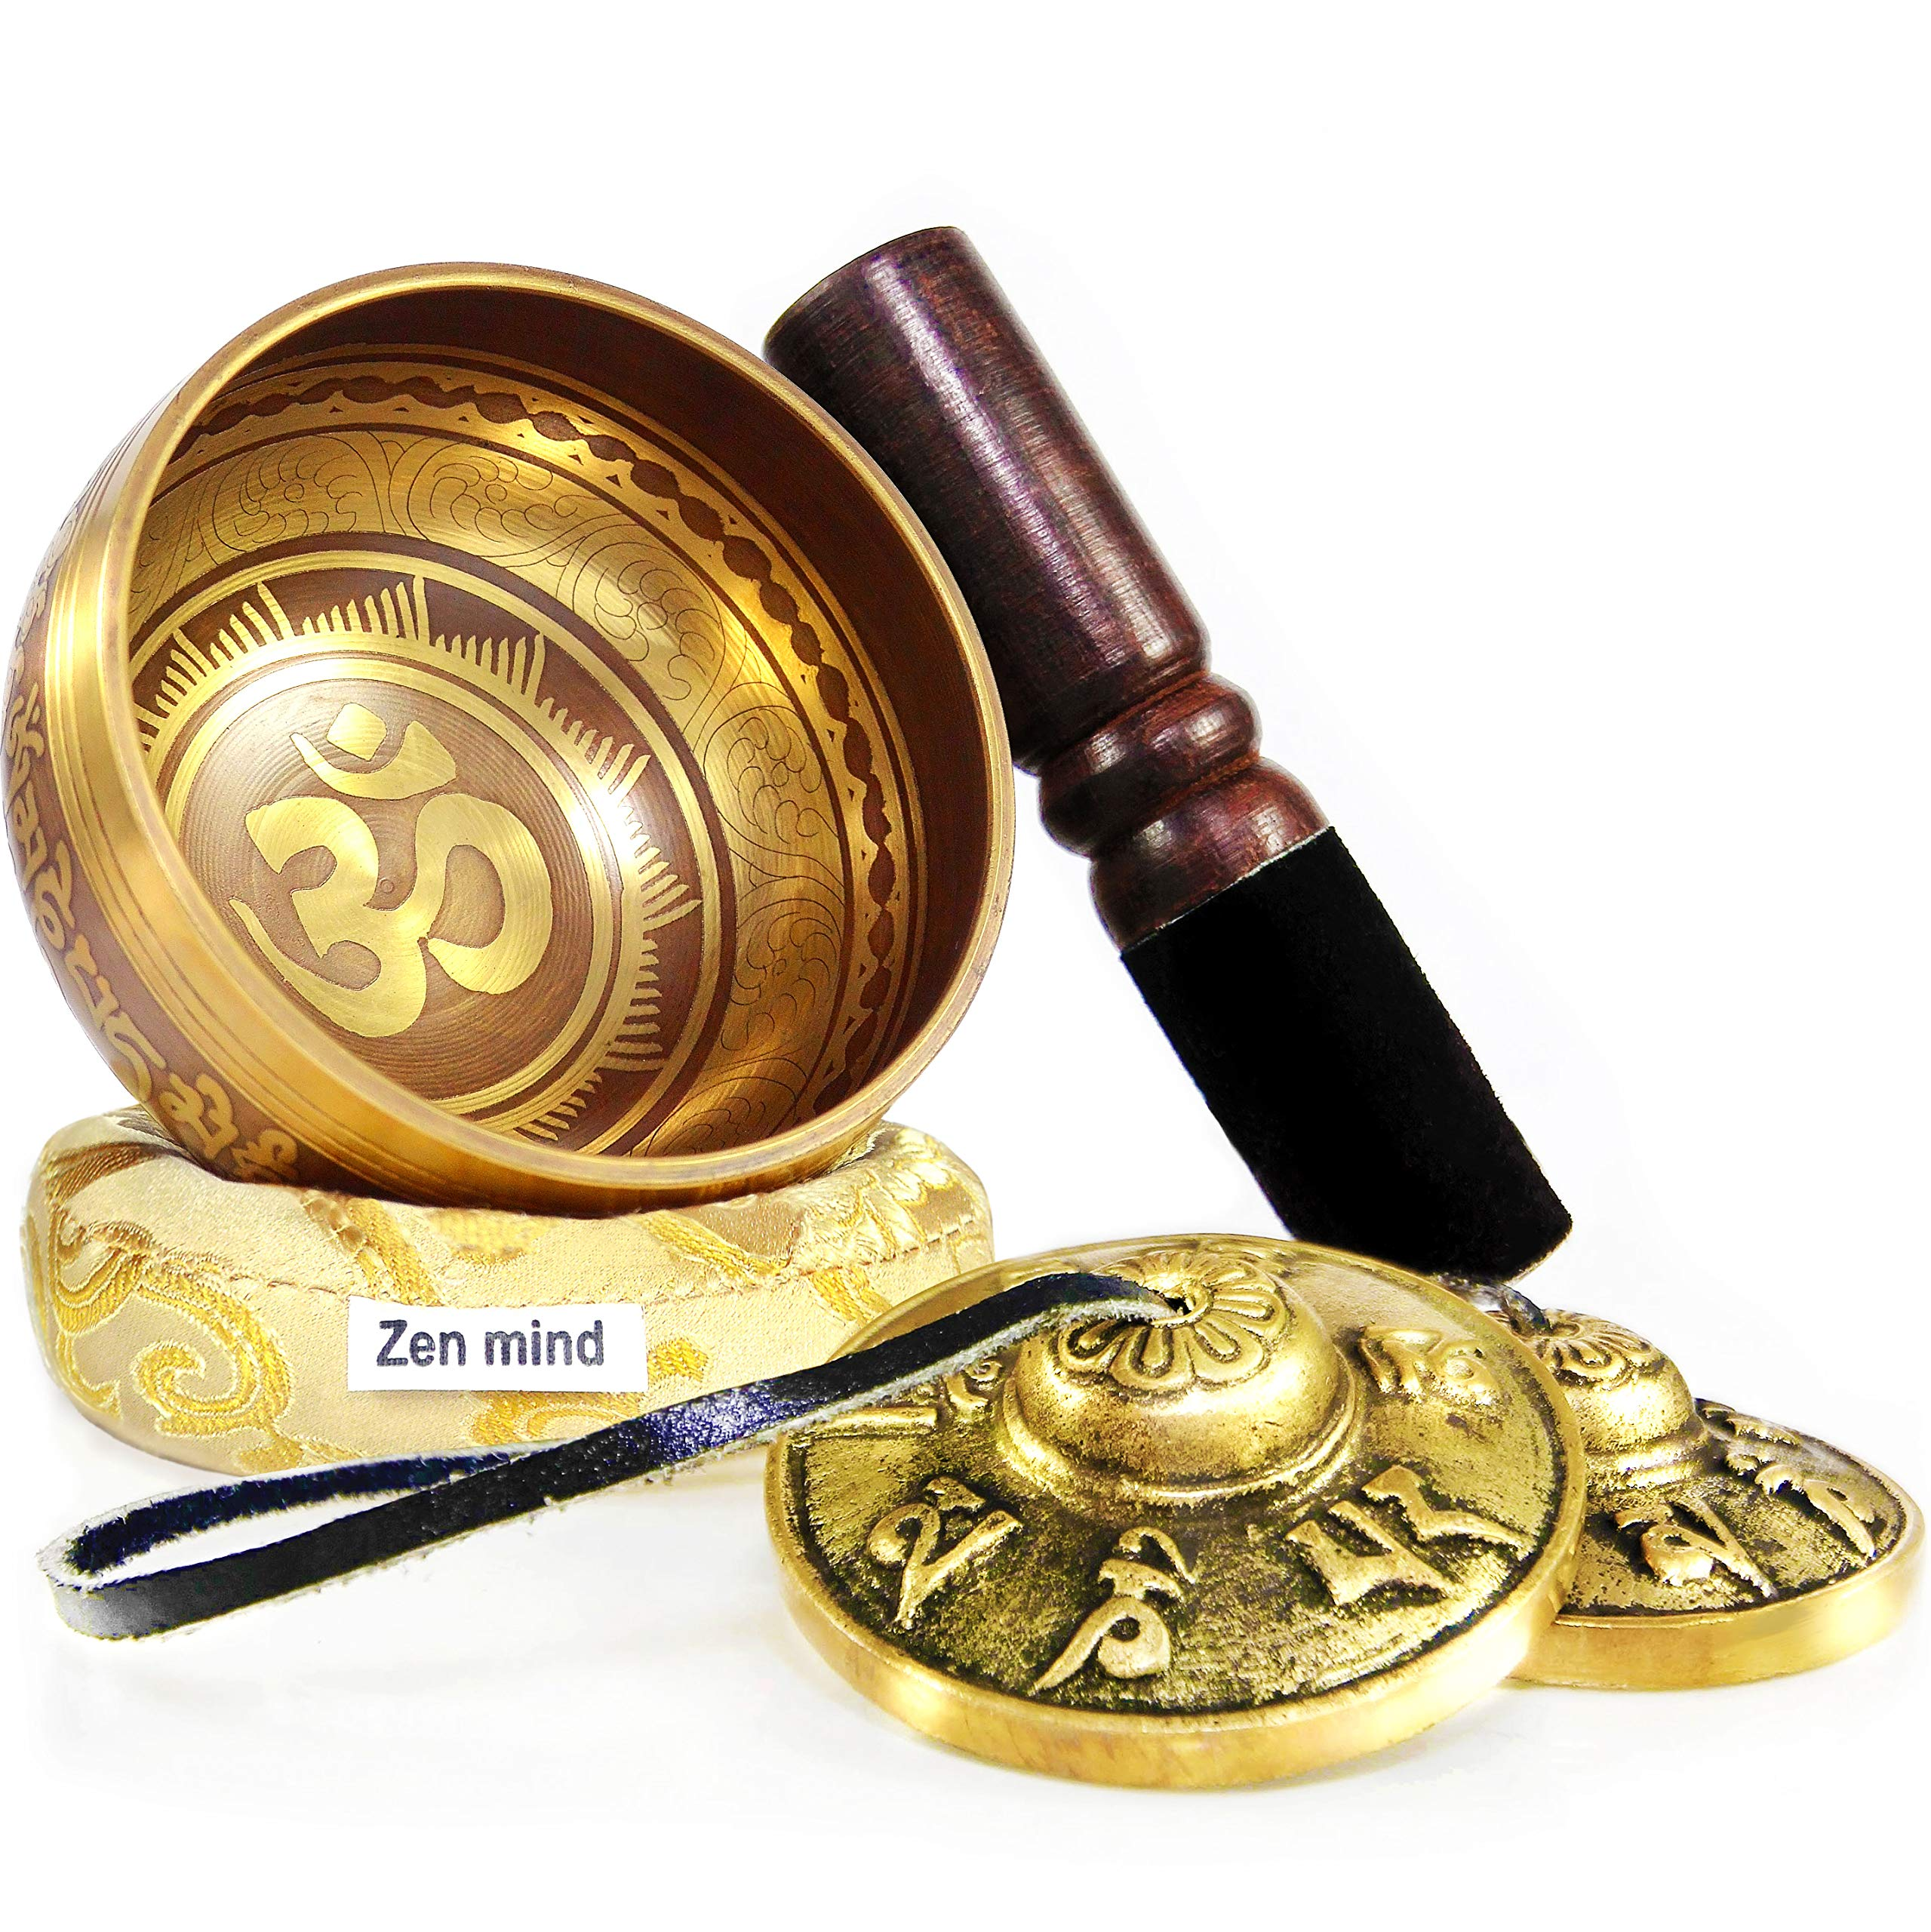 Tingsha Tibetan Singing Bowl Set by Zen Mind Design - with Tingsha Cymbals, Weighted Mallet, Handmade Cushion, Eco-Friendly Box and E-Book - for Yoga and Stress Relief Meditation by Zen Mind Design